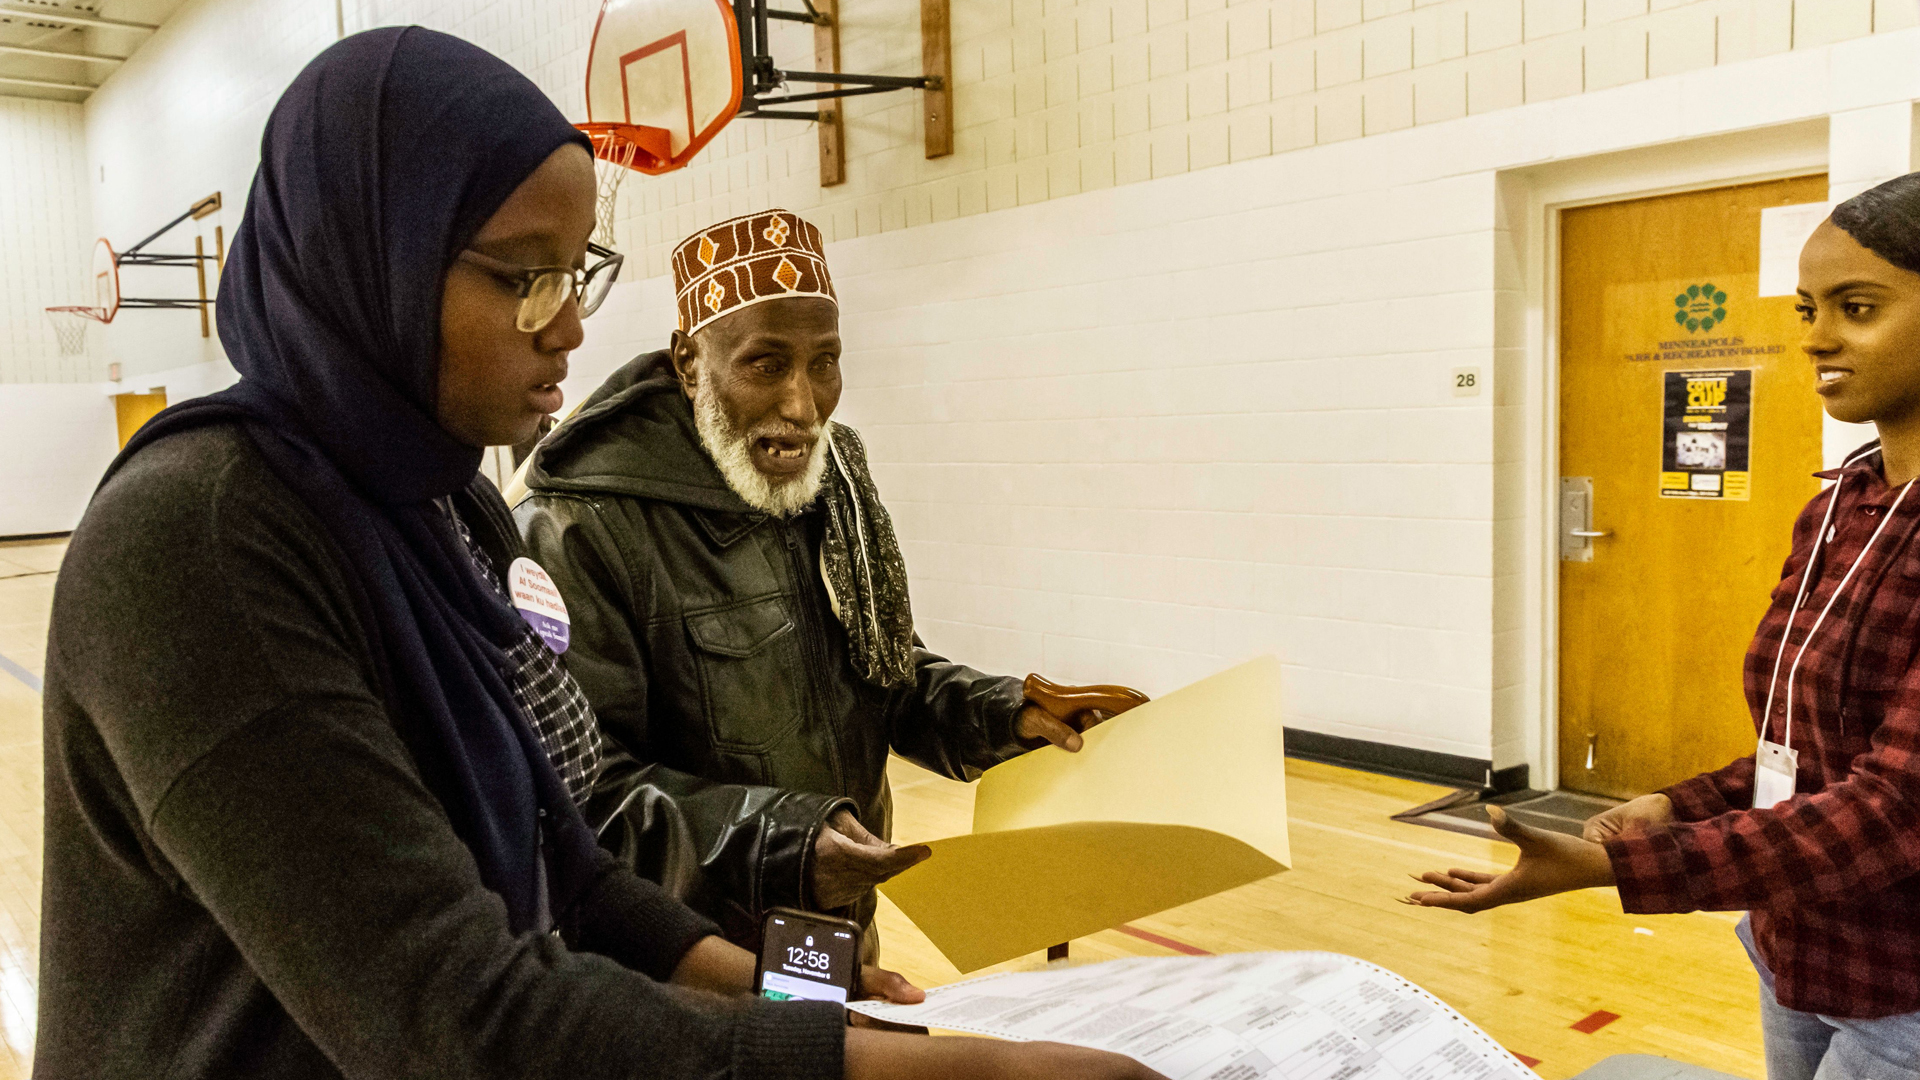 Voters cast ballots at a polling station in Minneapolis on Nov. 6, 2018. (Credit: KEREM YUCEL/AFP/Getty Images)